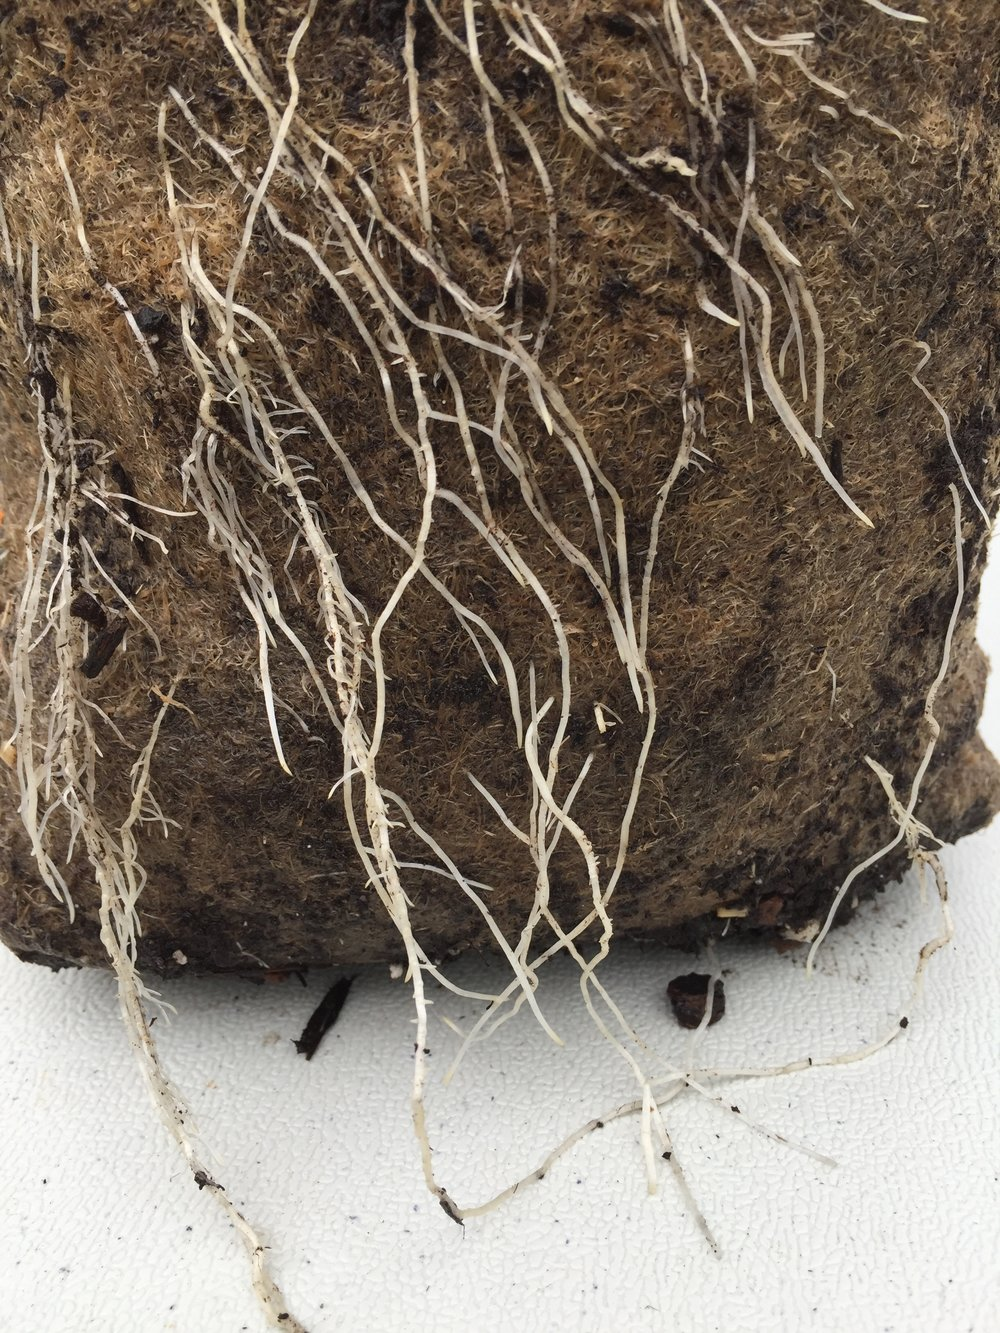 Root growth of 9 days after being transplanted